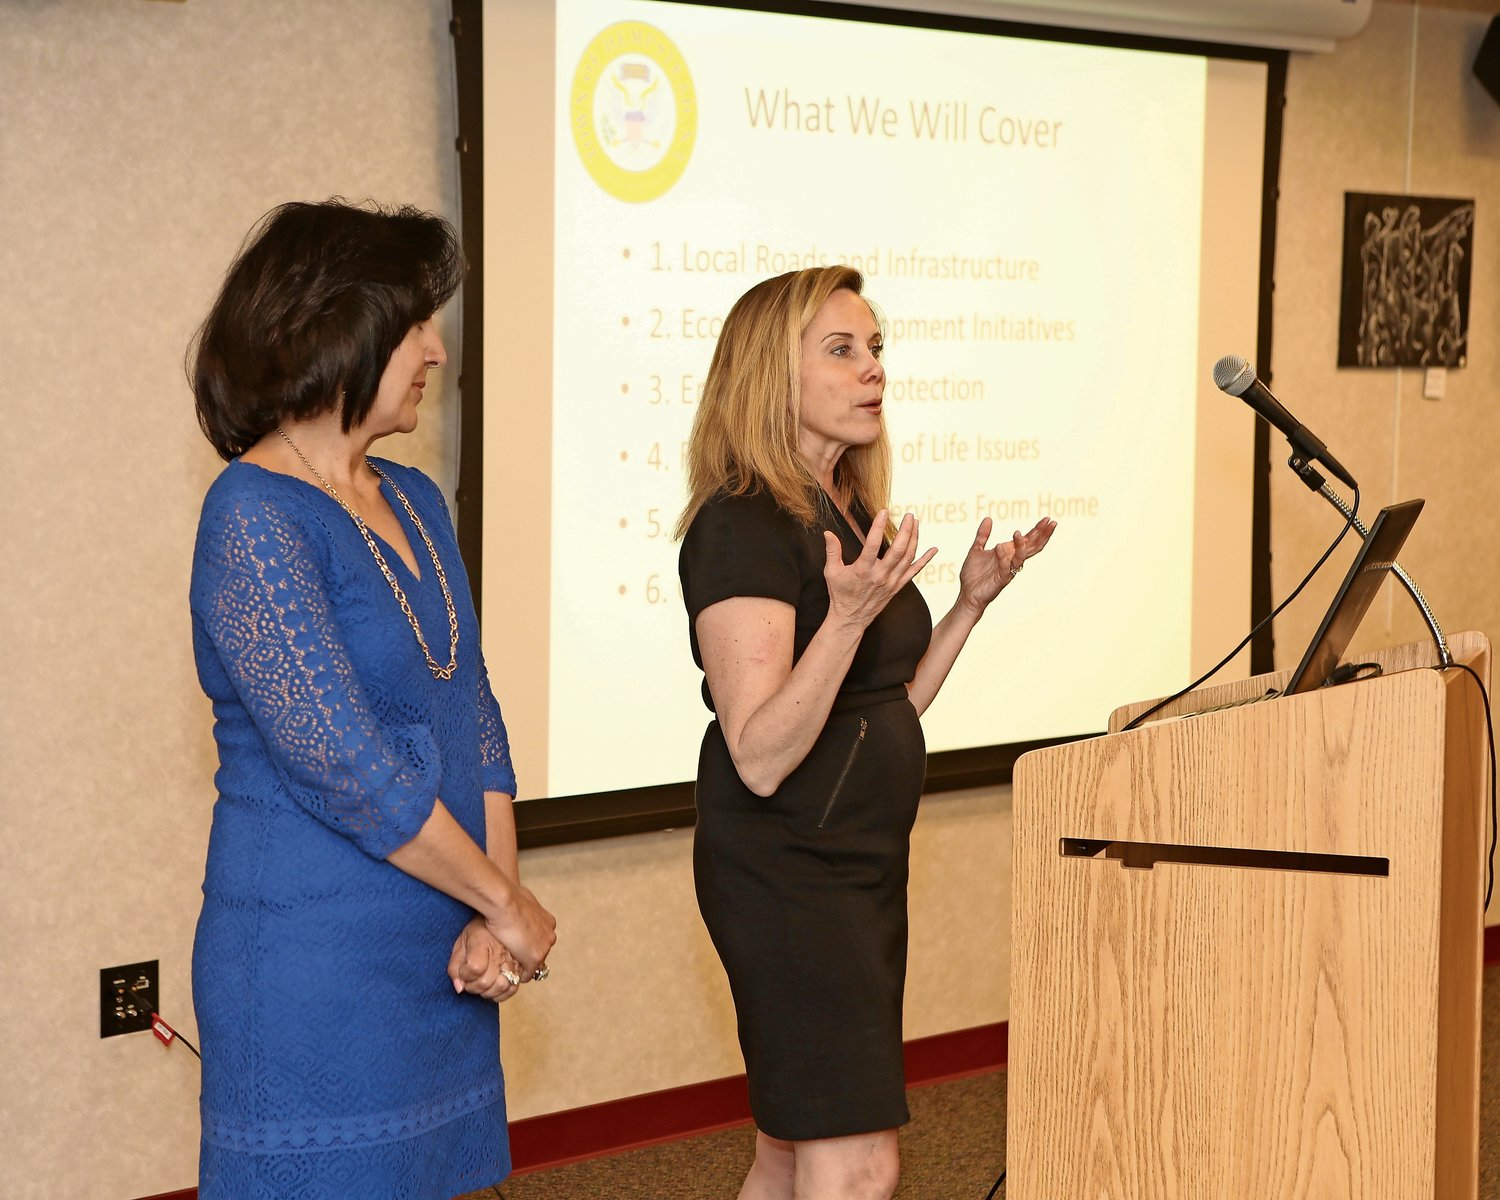 Town of Hempstead Supervisor Laura Gillen, right, and Town Clerk Sylvia Cabana delivered a presentation to residents at the Rockville Centre Public Library on May 16.